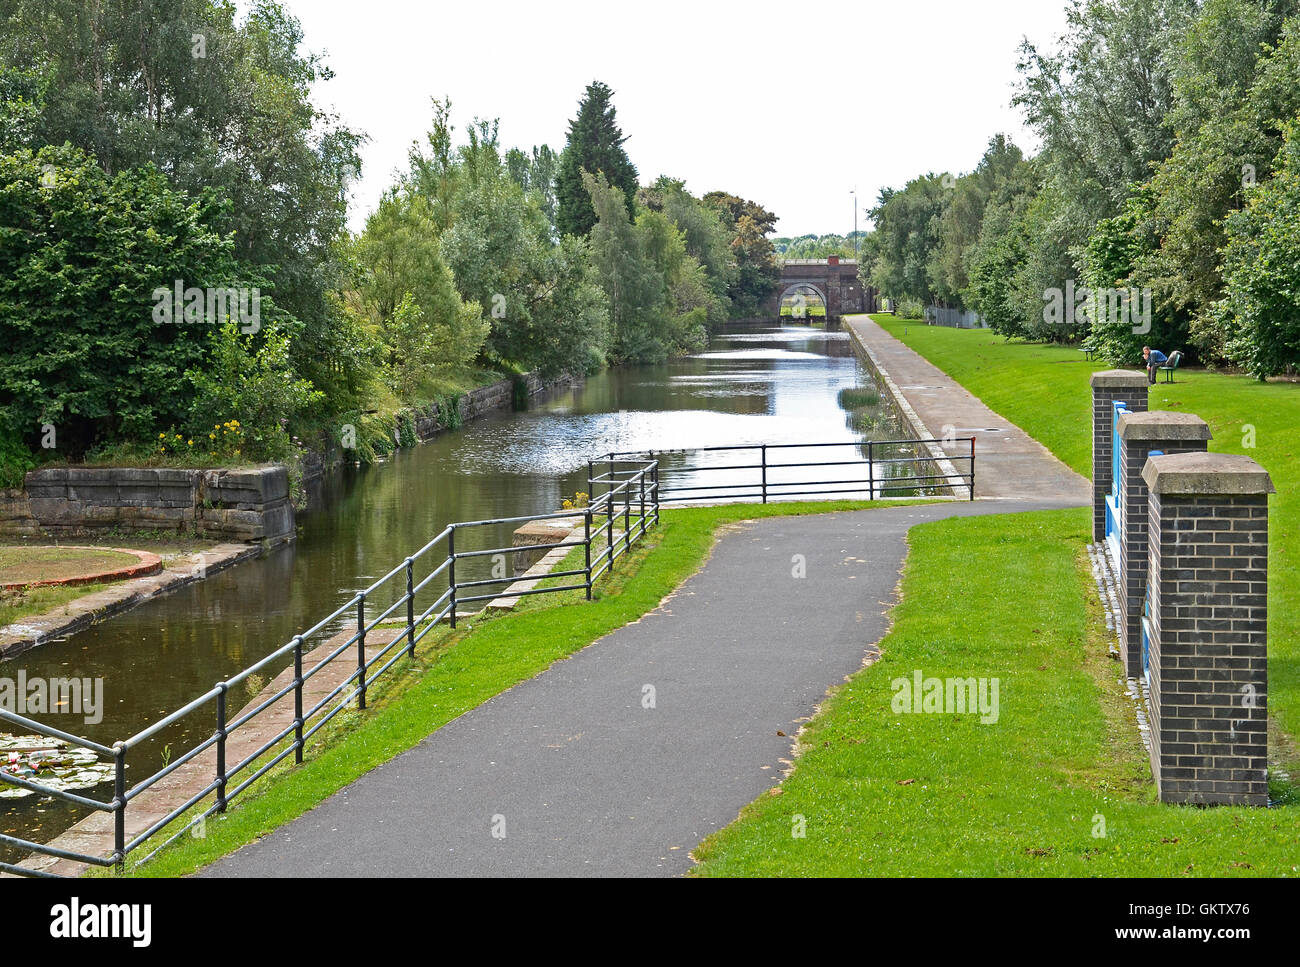 The Sankey canal at St.Helens in Merseyside, UK, the canal no longer used by boats in now a linear park. - Stock Image